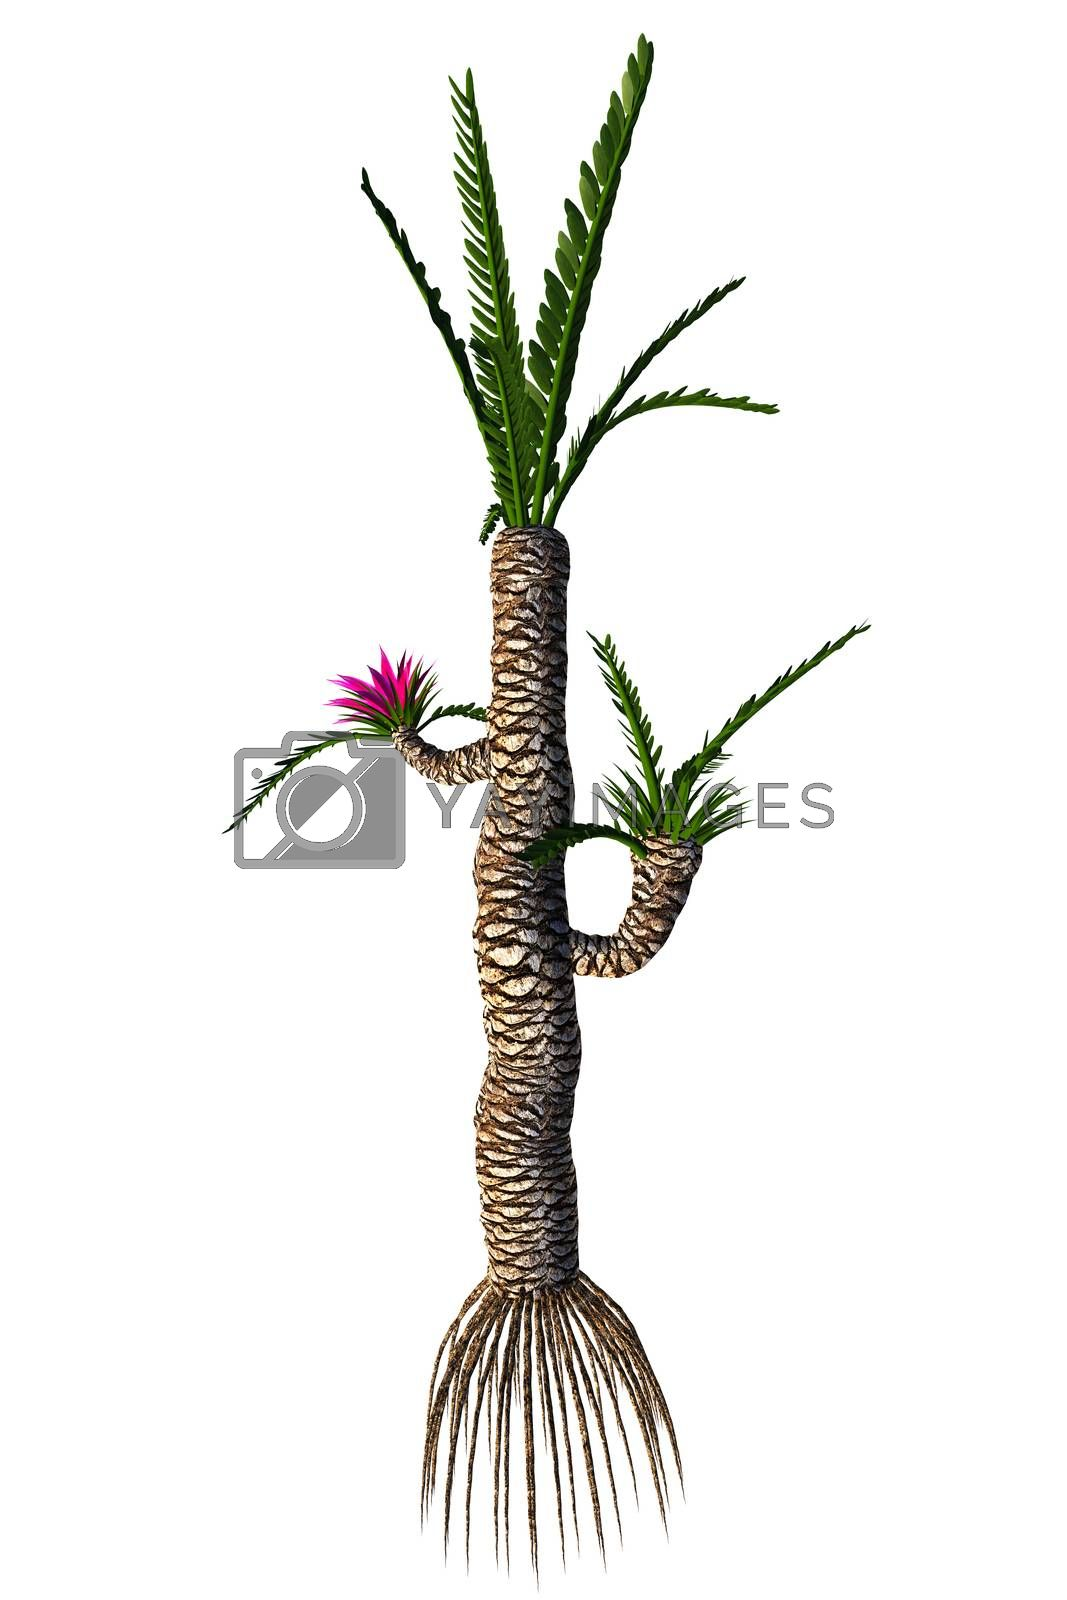 Williamsonia resembled a shrub or tree that lived in the Jurassic to the Cretaceous Periods.